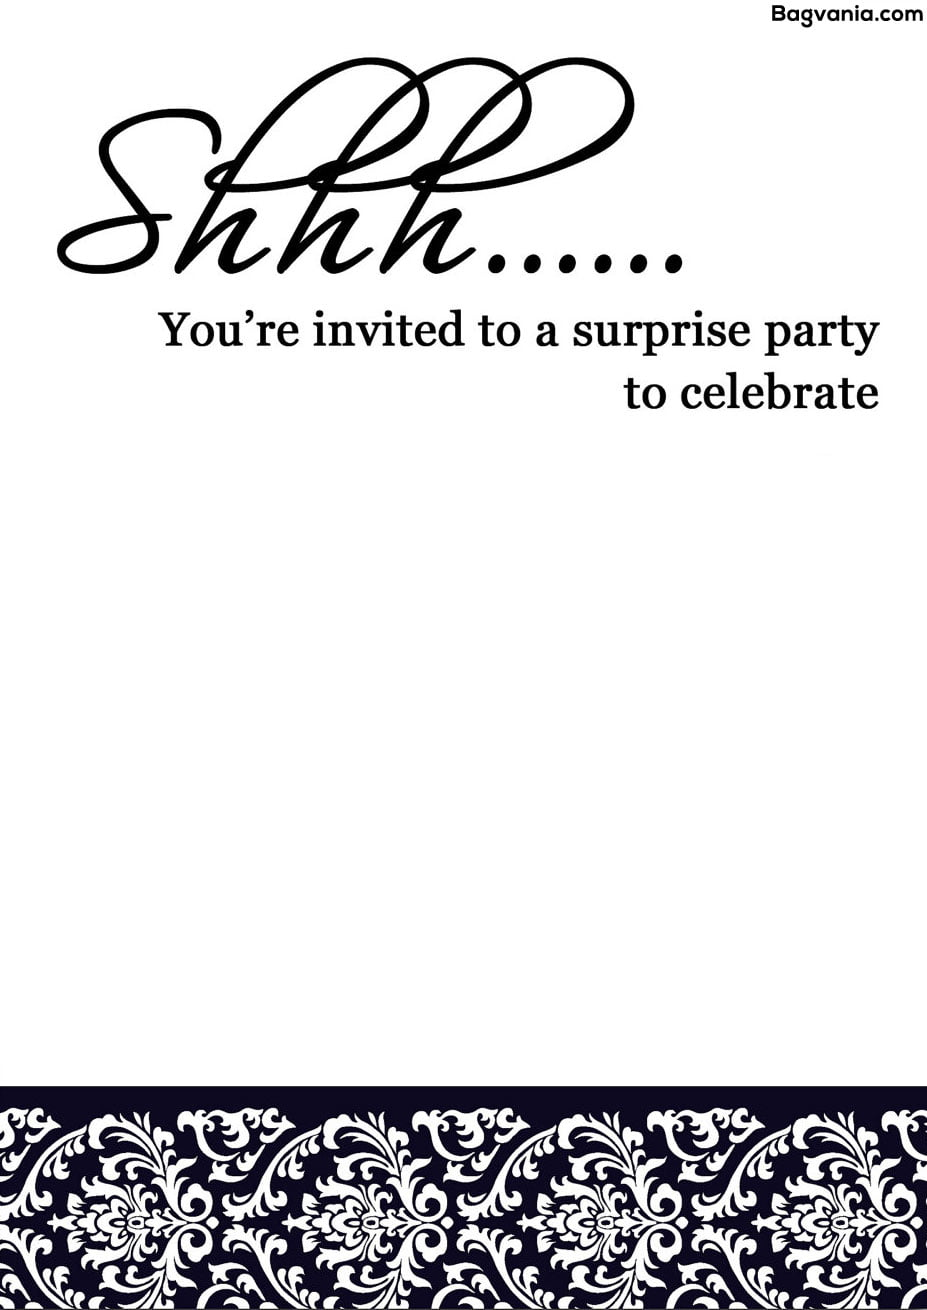 free printable surprise birthday invitations  u2013 bagvania